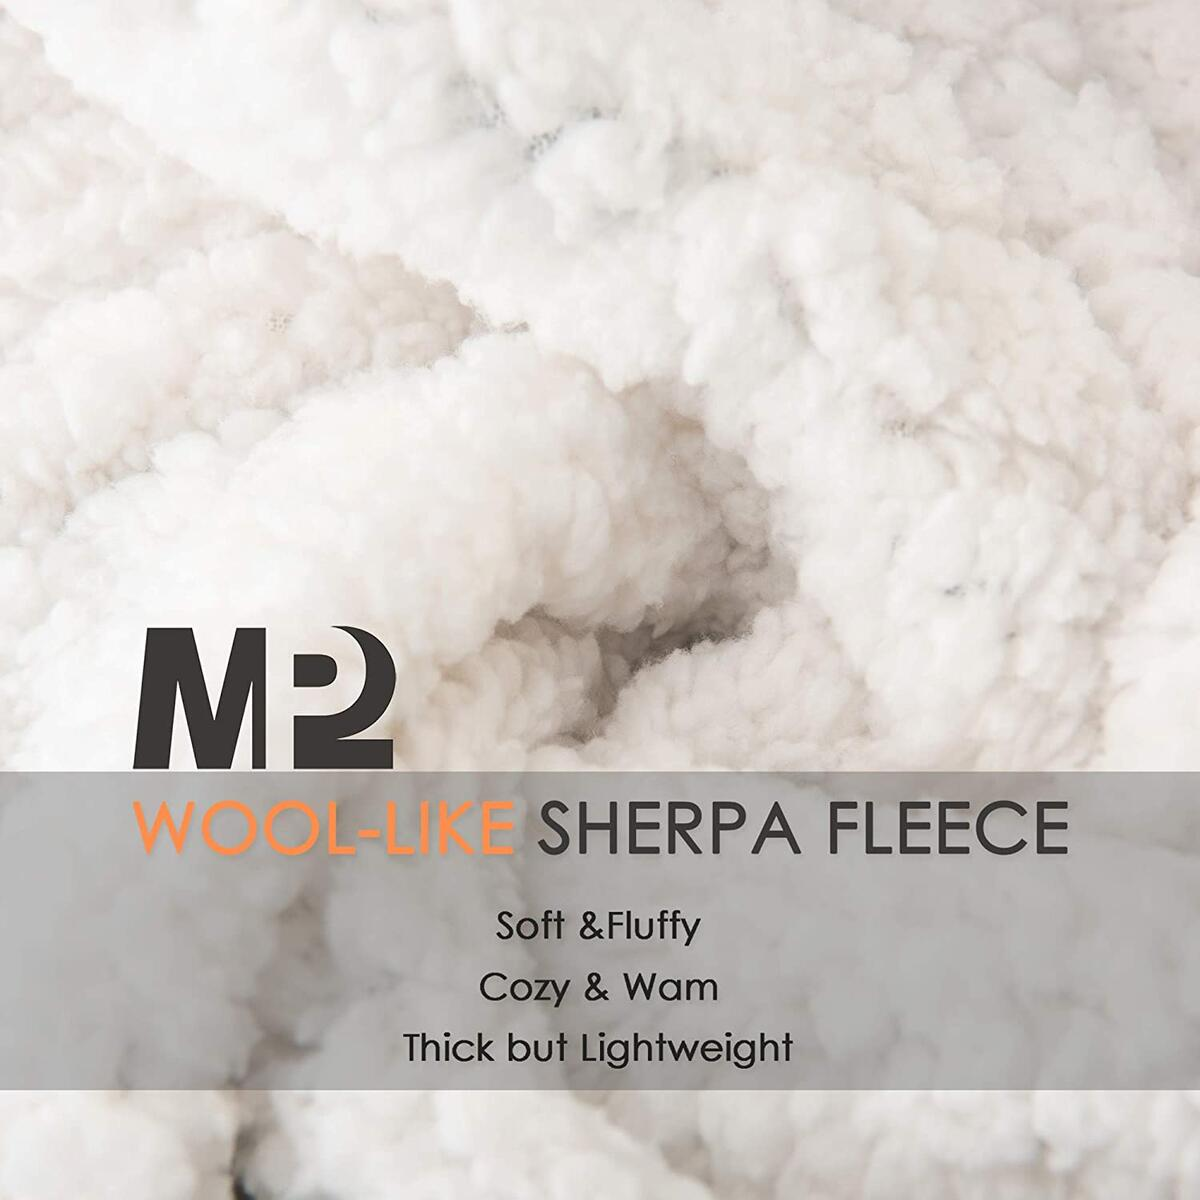 Fleece Sherpa Comfy Throw Blanket, Fuzzy Soft Plush Flannel Blanket for Sofa, Couch, Bed, Outdoor, Travel - 50x60 Inches, Grey Ogee